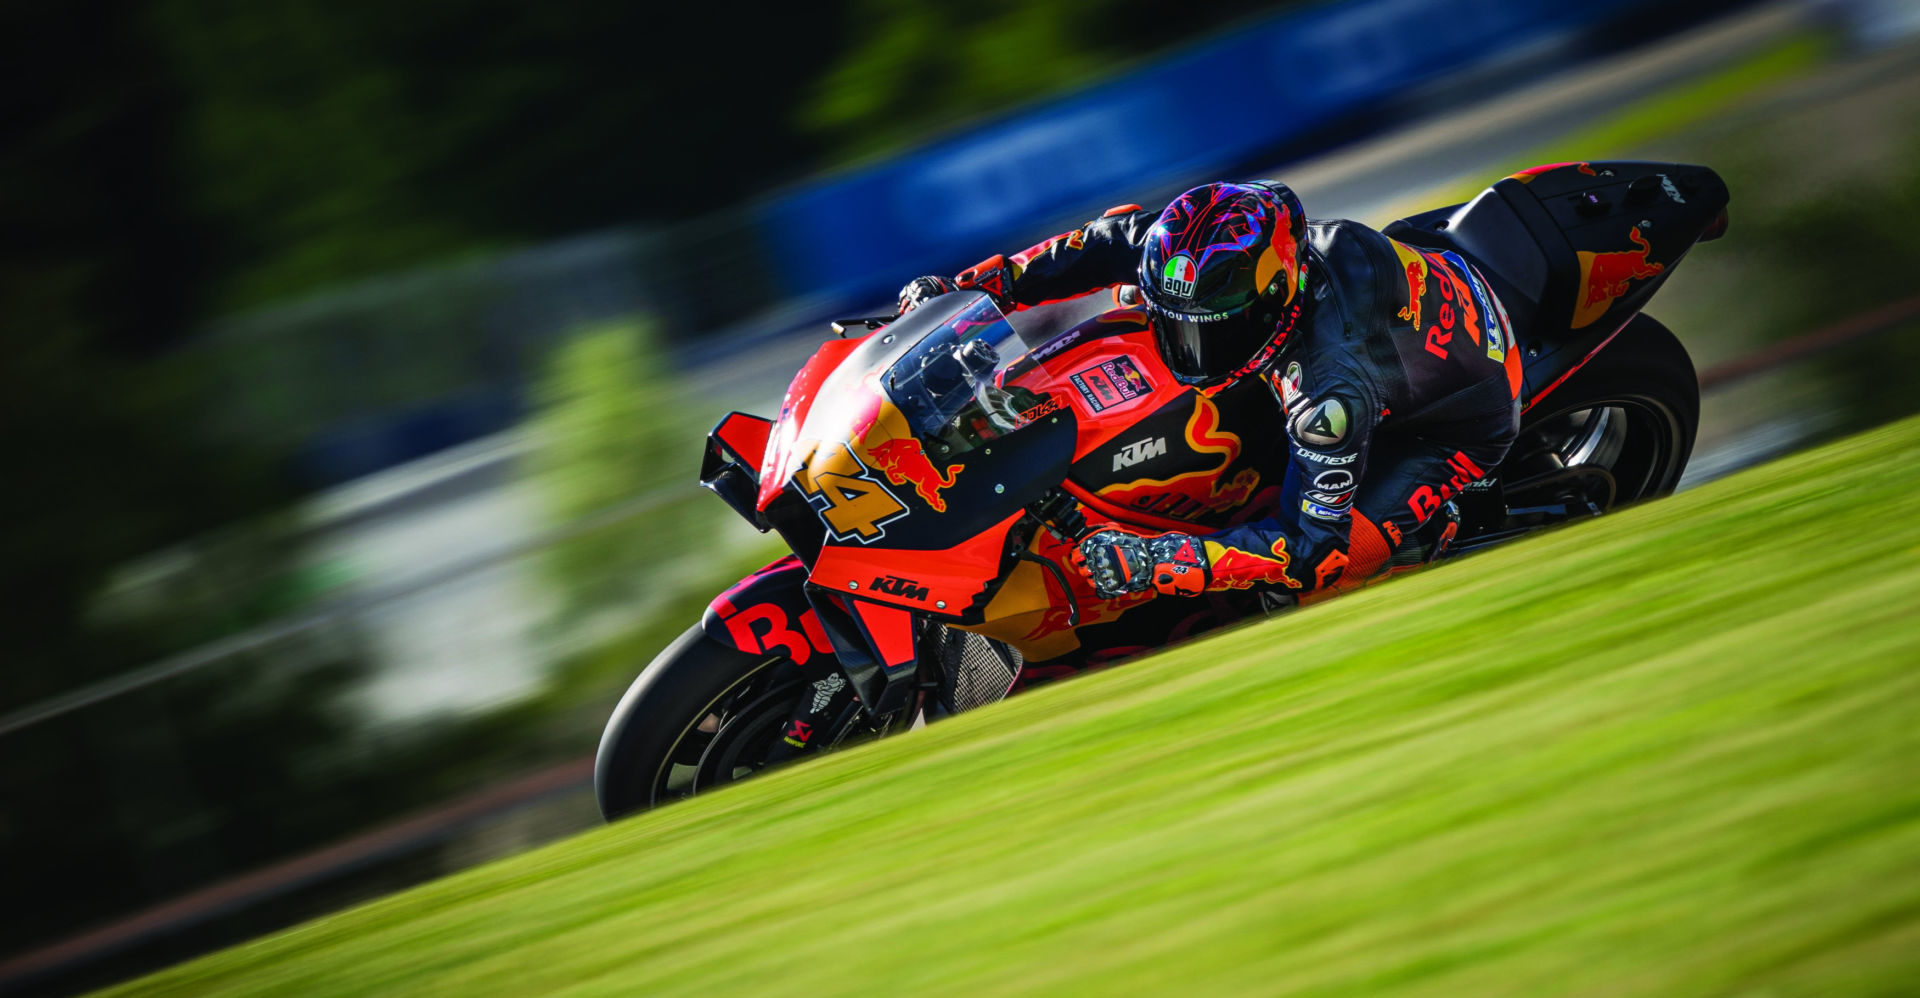 Pol Espargaro (44) in action at Red Bull Ring. Photo by Philip Platzer, courtesy Red Bull KTM.